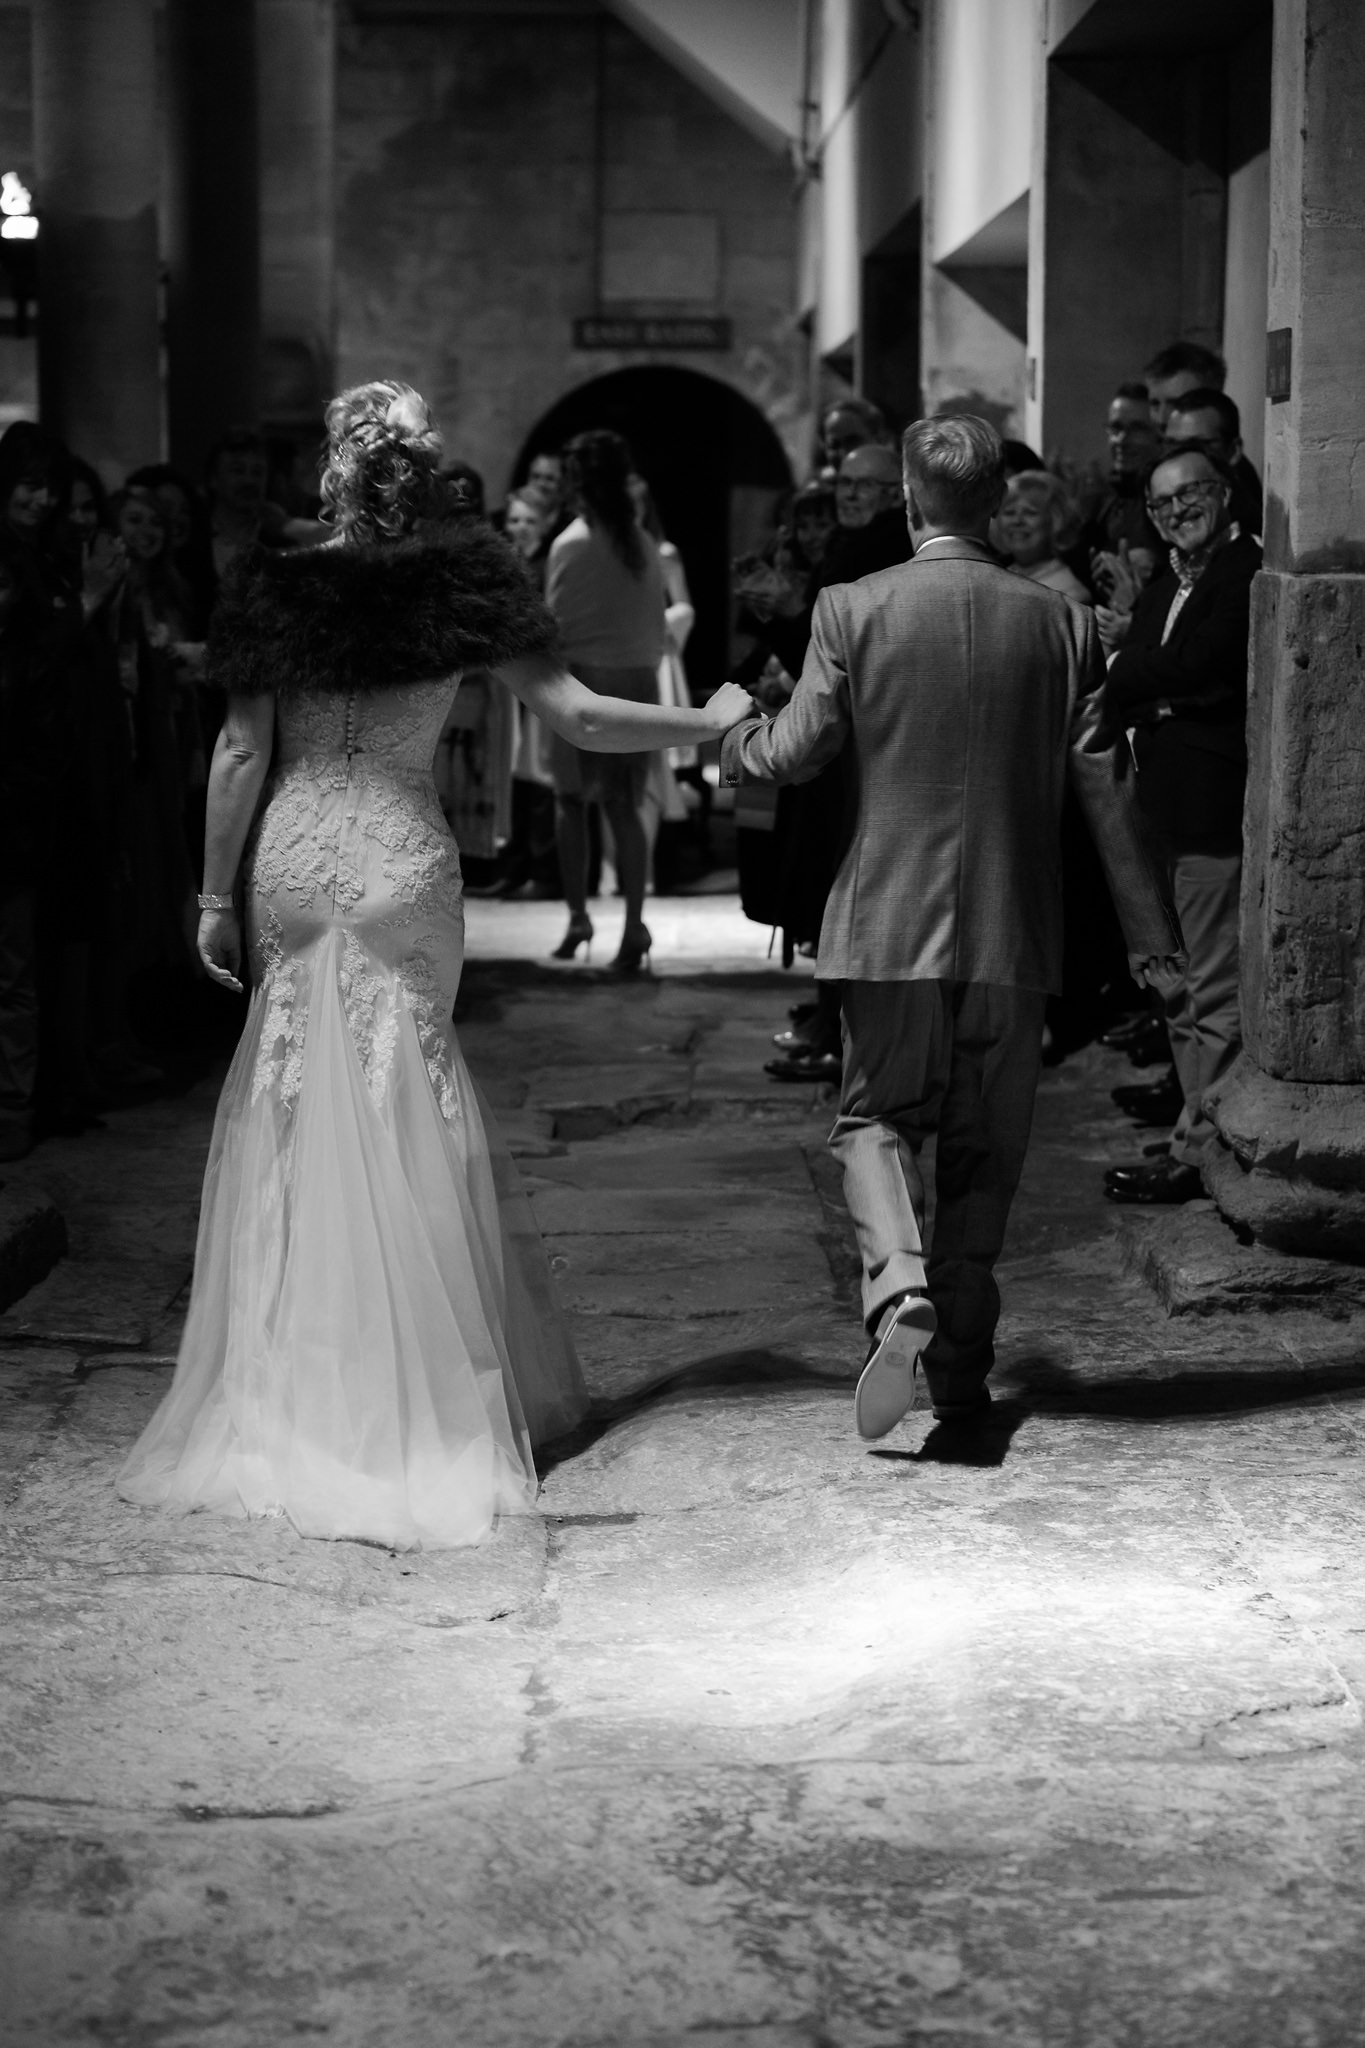 Bride and groom enter for their wedding